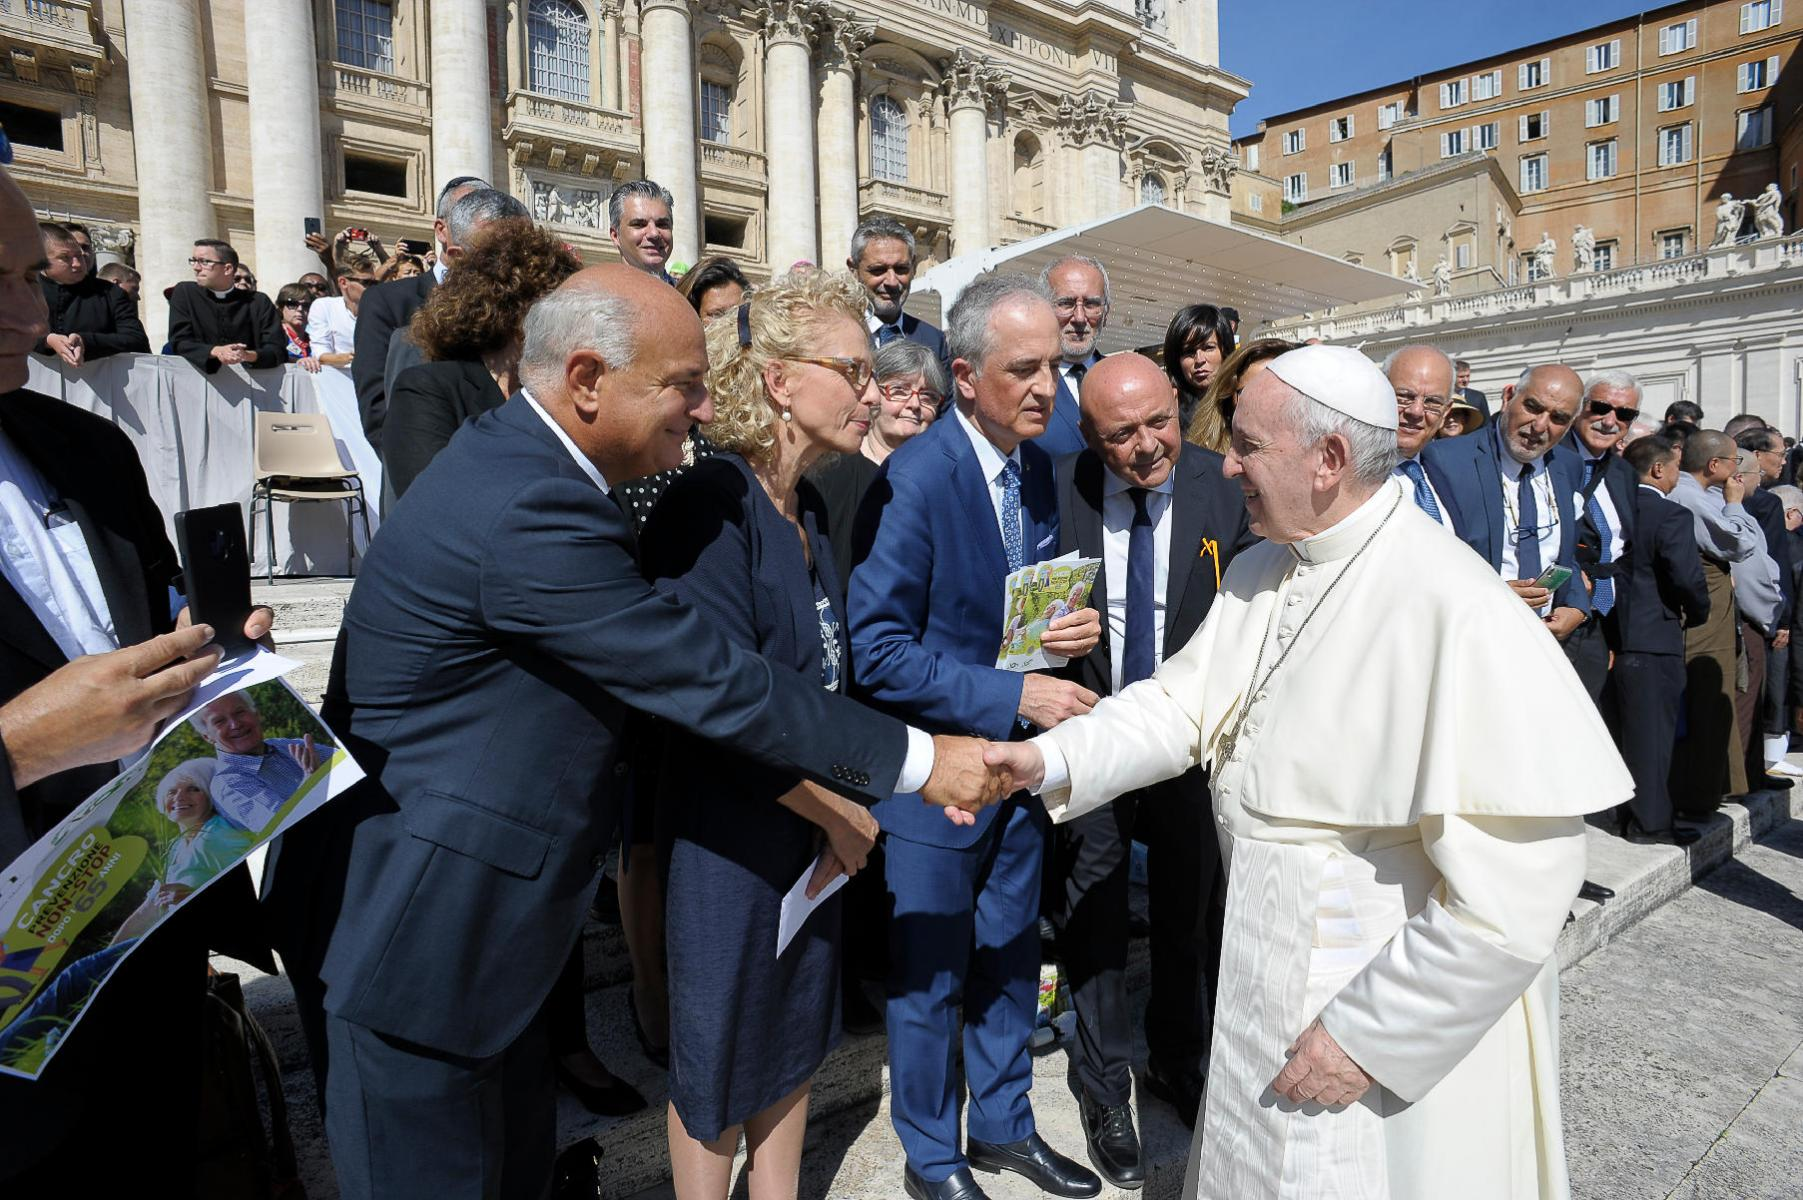 AIOM representatives meeting Pope Francis outside the Vatican